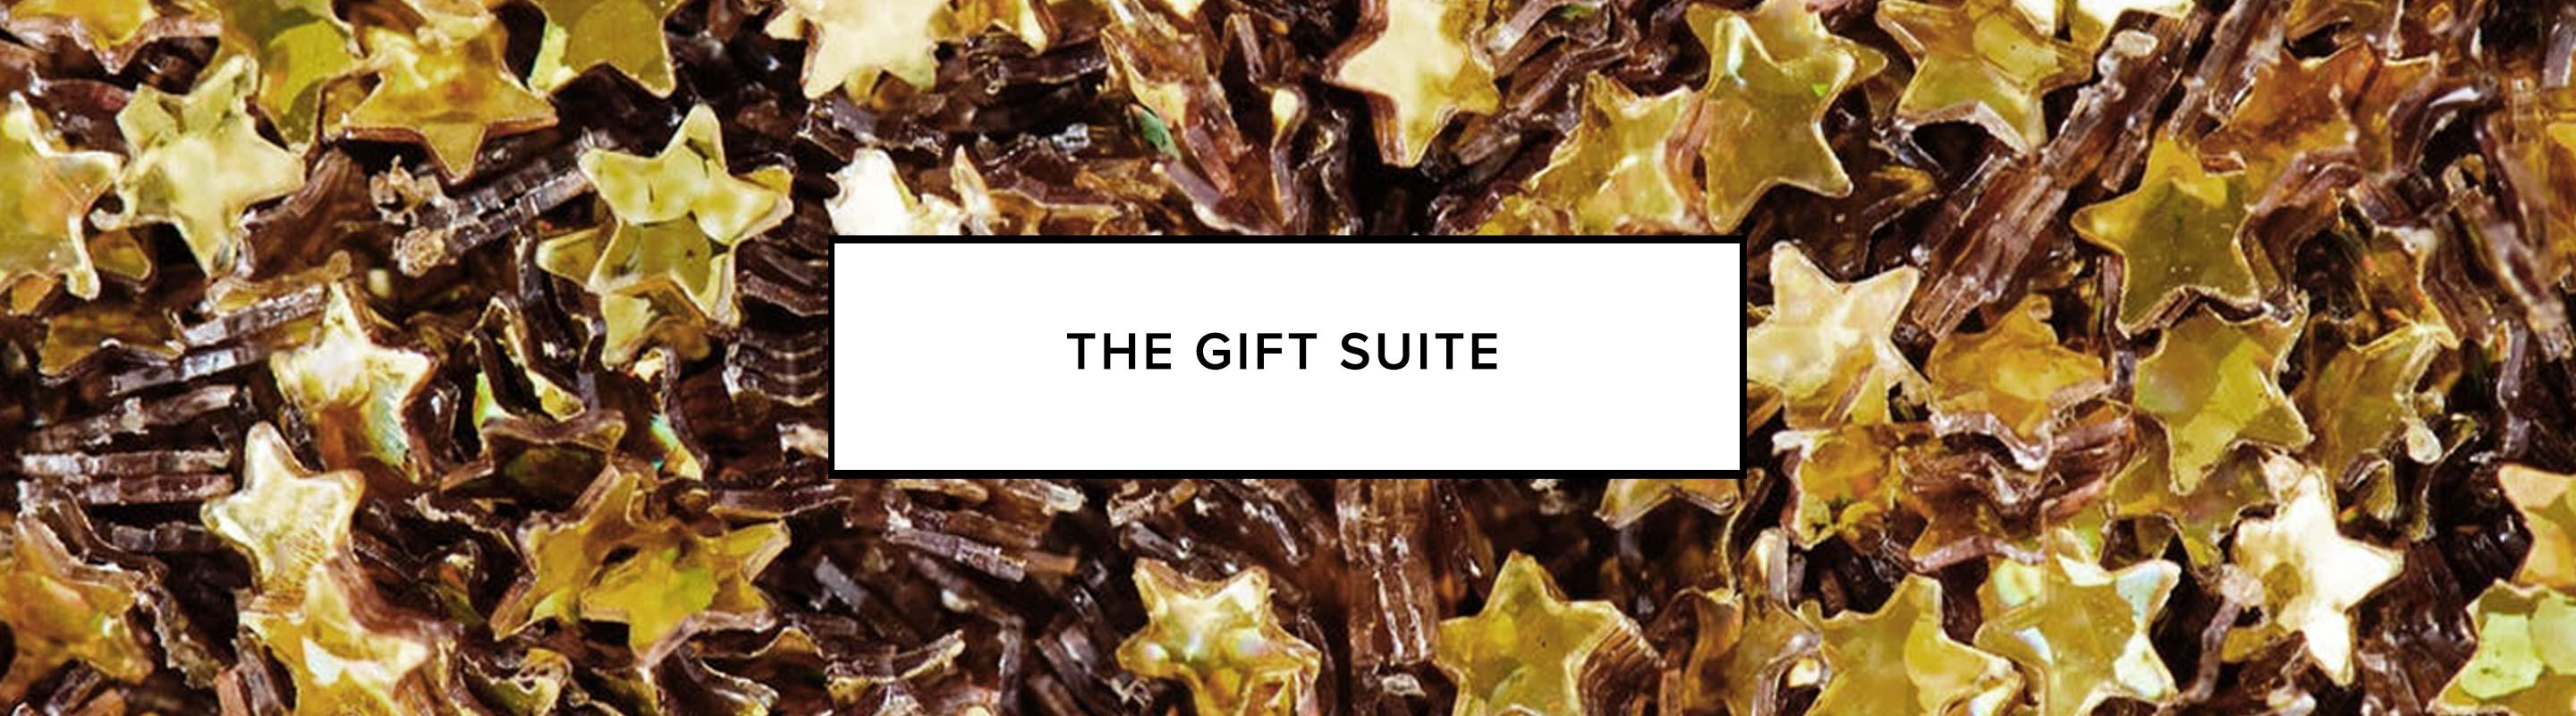 The Gift Suite